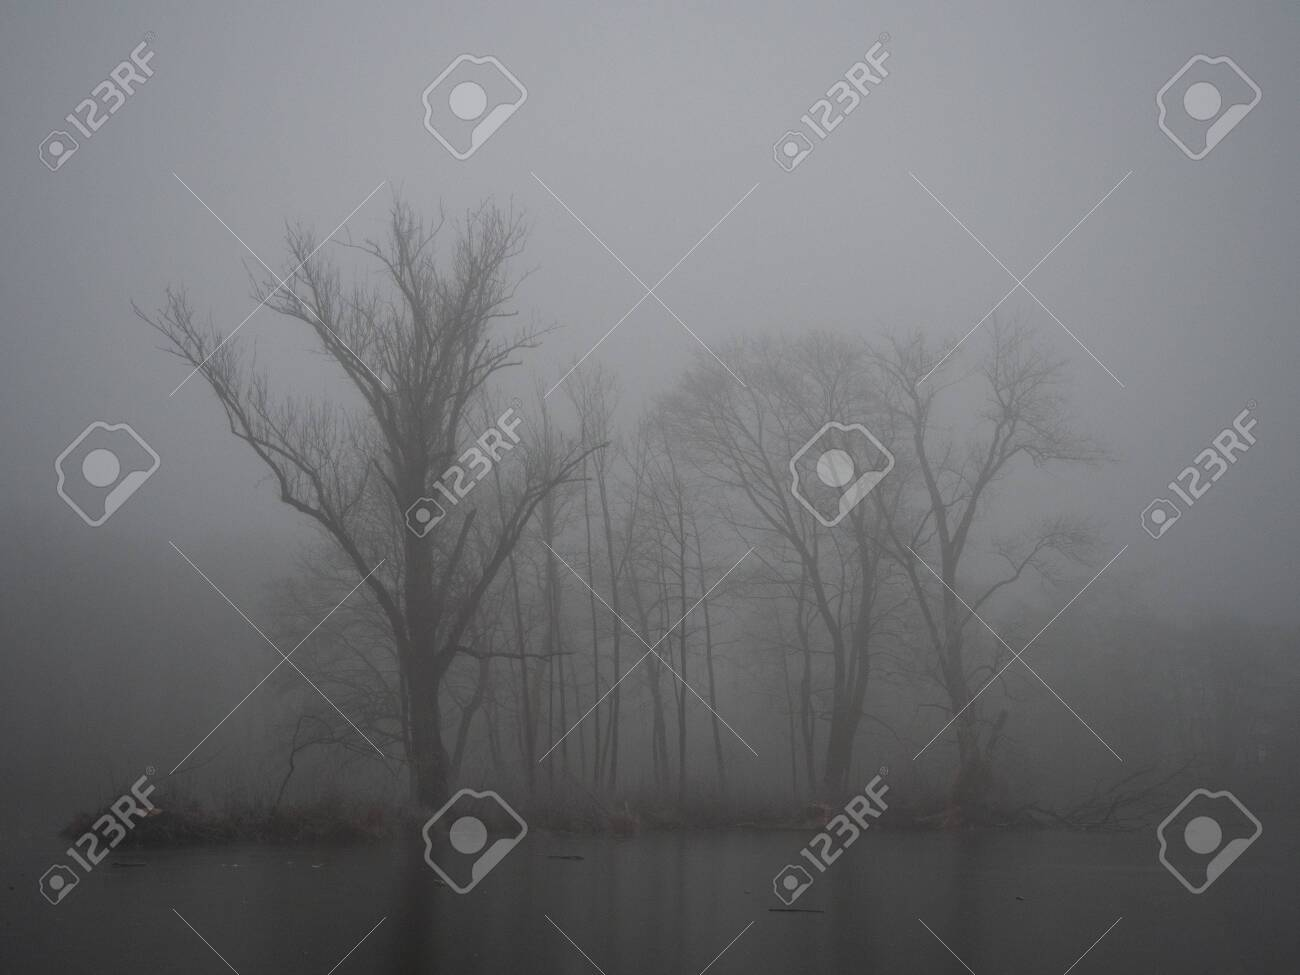 Pond in winter in a foggy forest - 140561778